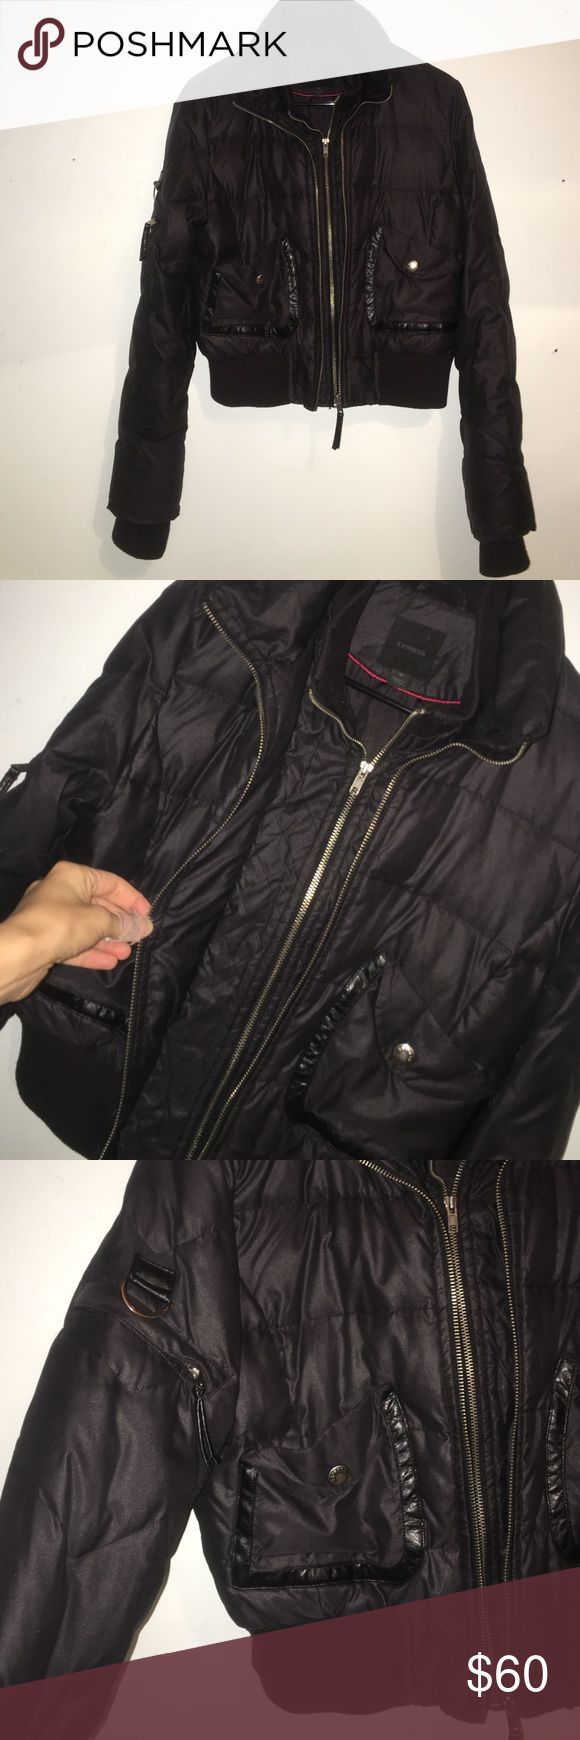 Express puffer jacket ! Super soft and warm puffer jacket from express . A tad bit of wear but practically brand new . Double zipper cool details around pockets live this but never wear it . Express Jackets & Coats Puffers